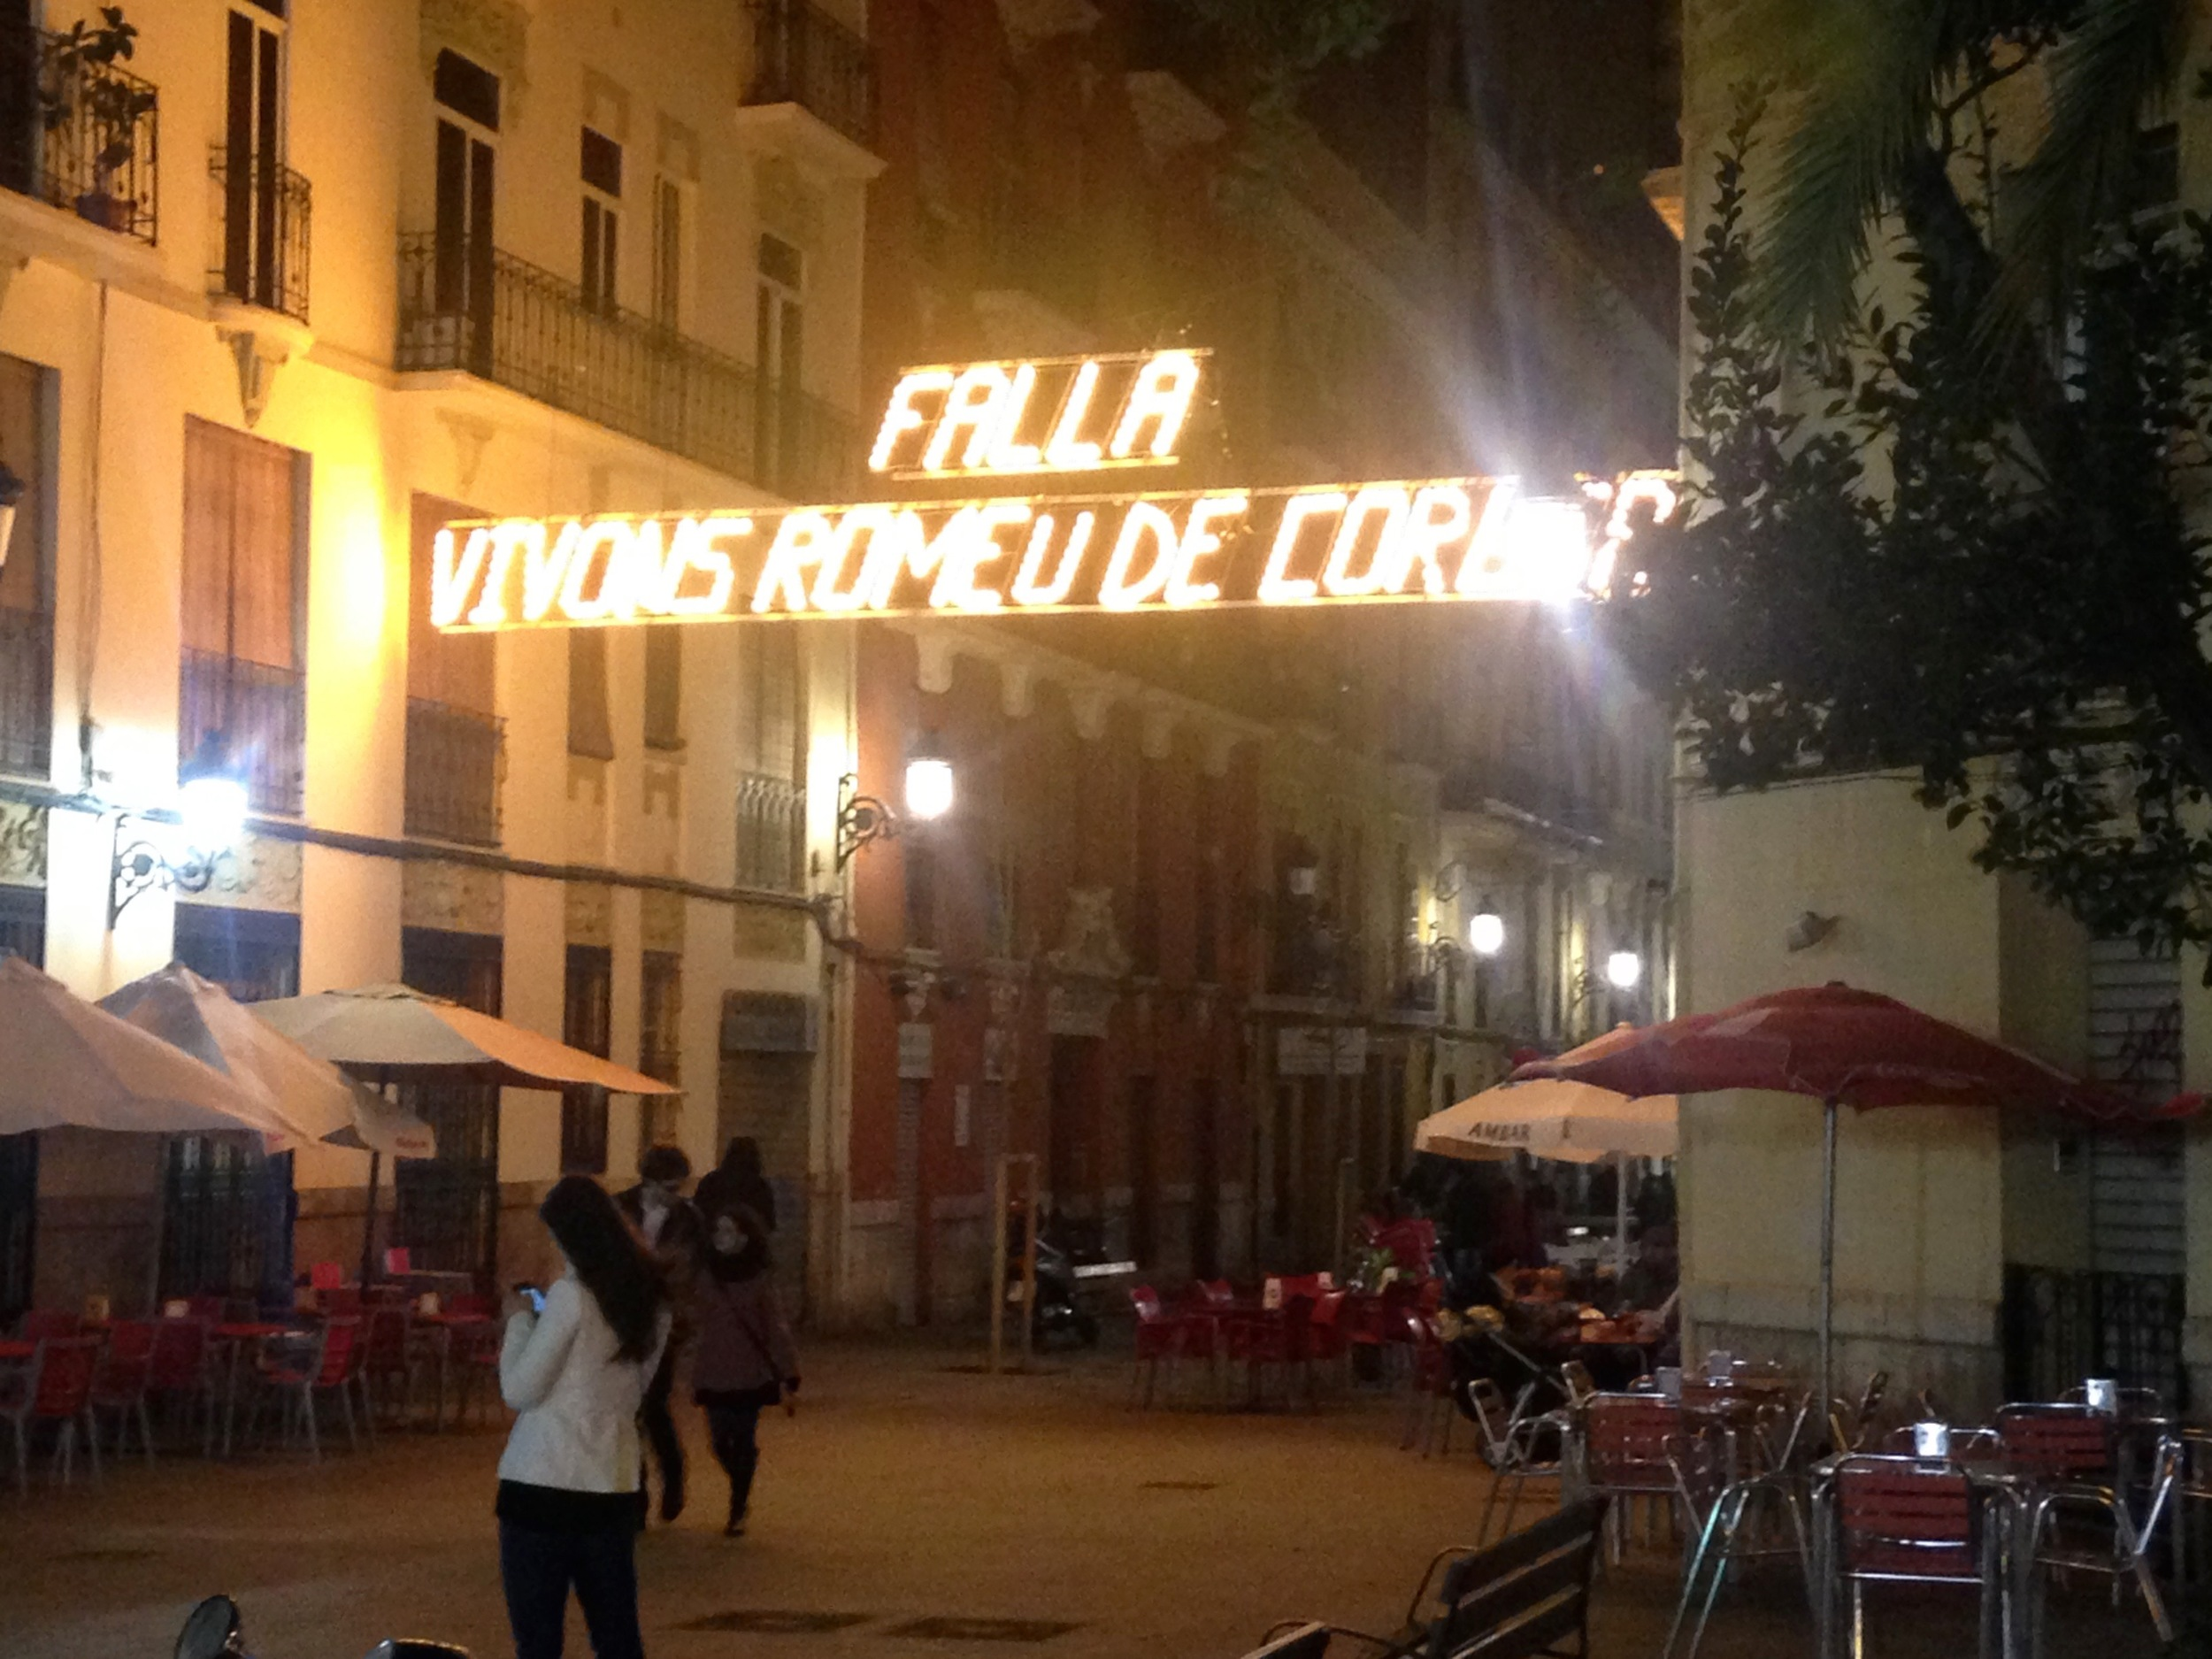 Every neighborhood had its own signs and lights. Many things are written in Valenciano, the local language (it is similar to Catalán).